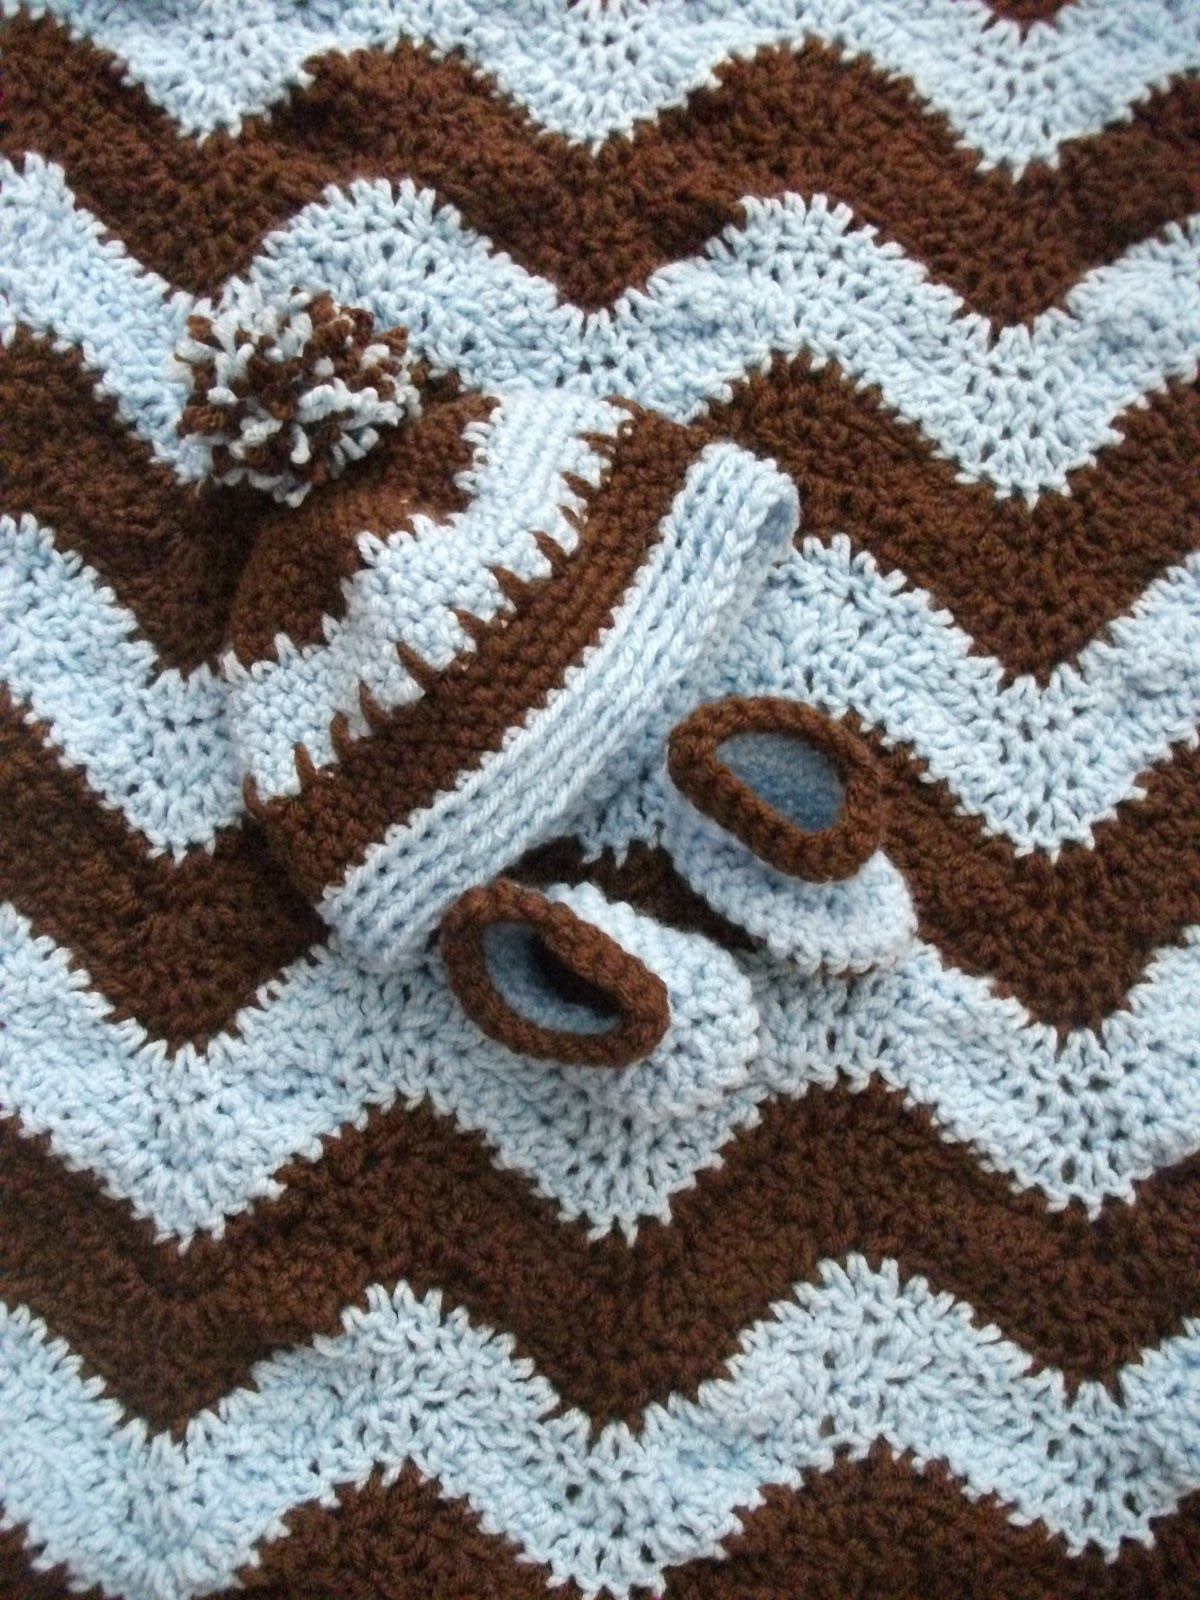 Crochet Ripple Afghan Pattern Instructions : AFGHAN BABY CROCHETED FREE PATTERN RIPPLE Patterns